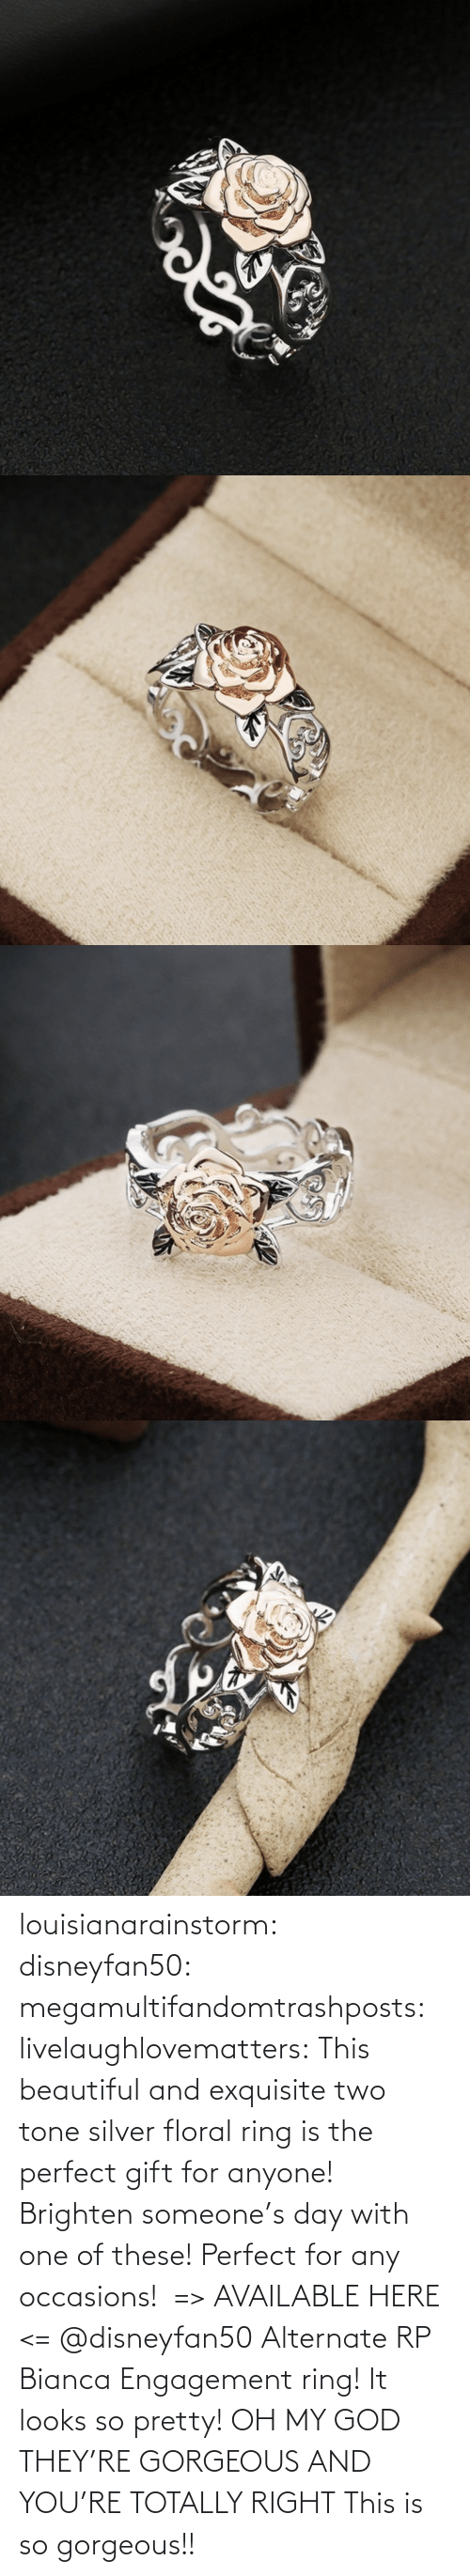 Gorgeous: louisianarainstorm: disneyfan50:  megamultifandomtrashposts:  livelaughlovematters:  This beautiful and exquisite two tone silver floral ring is the perfect gift for anyone! Brighten someone's day with one of these! Perfect for any occasions!  => AVAILABLE HERE <=    @disneyfan50 Alternate RP Bianca Engagement ring! It looks so pretty!  OH MY GOD THEY'RE GORGEOUS AND YOU'RE TOTALLY RIGHT    This is so gorgeous!!